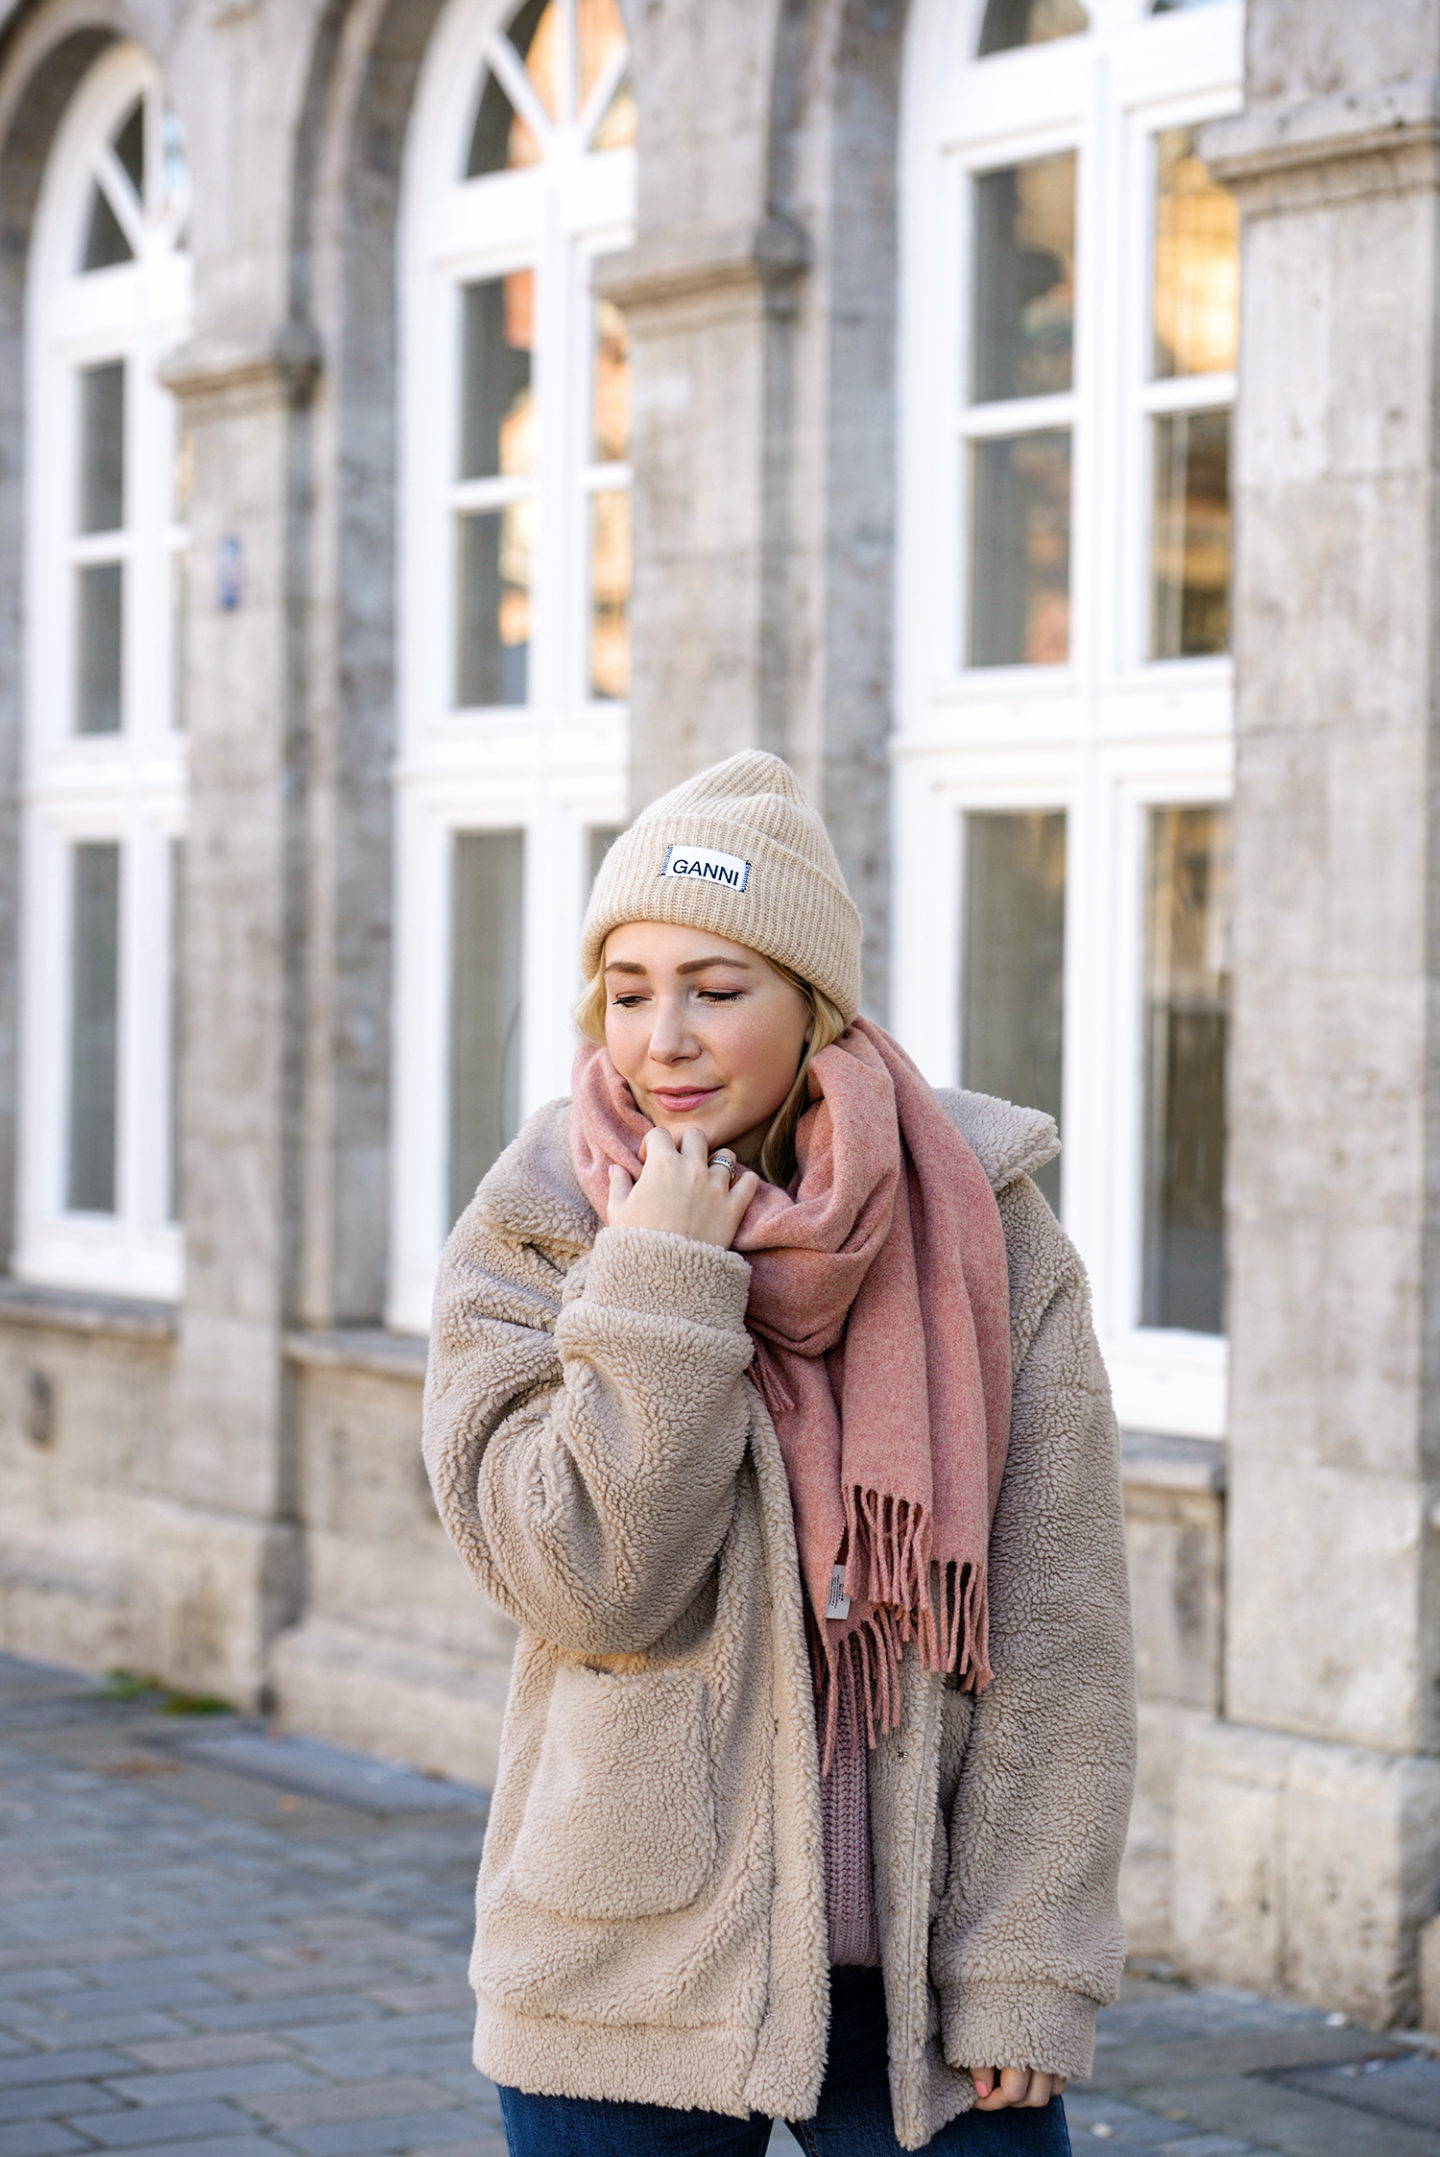 favorite winter outfits 2019 2020